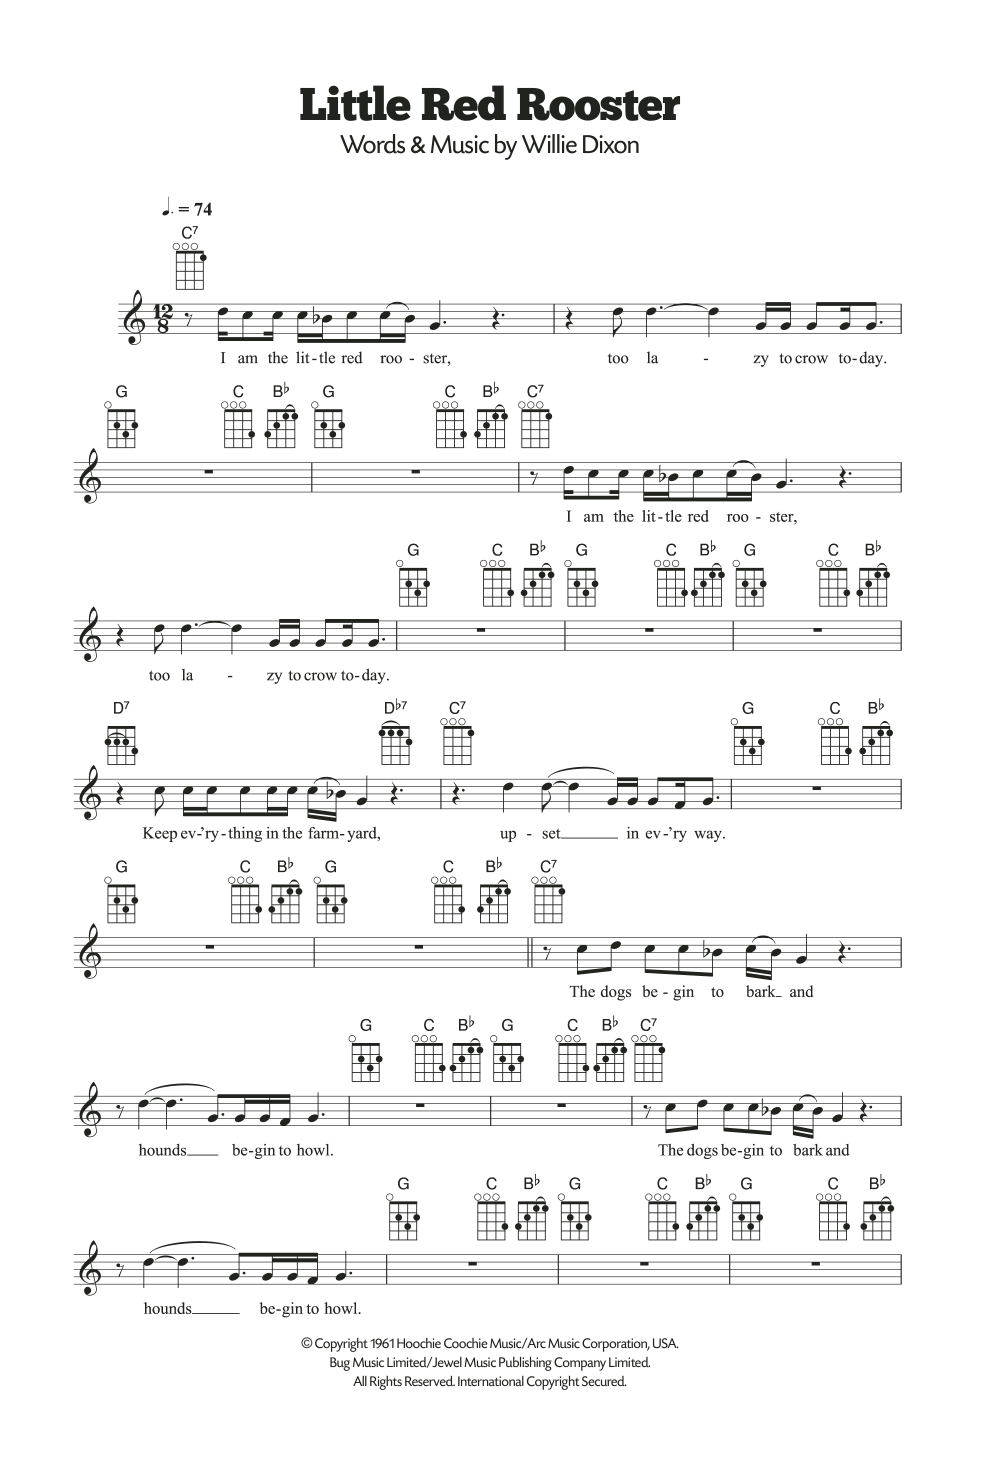 Little Red Rooster Sheet Music